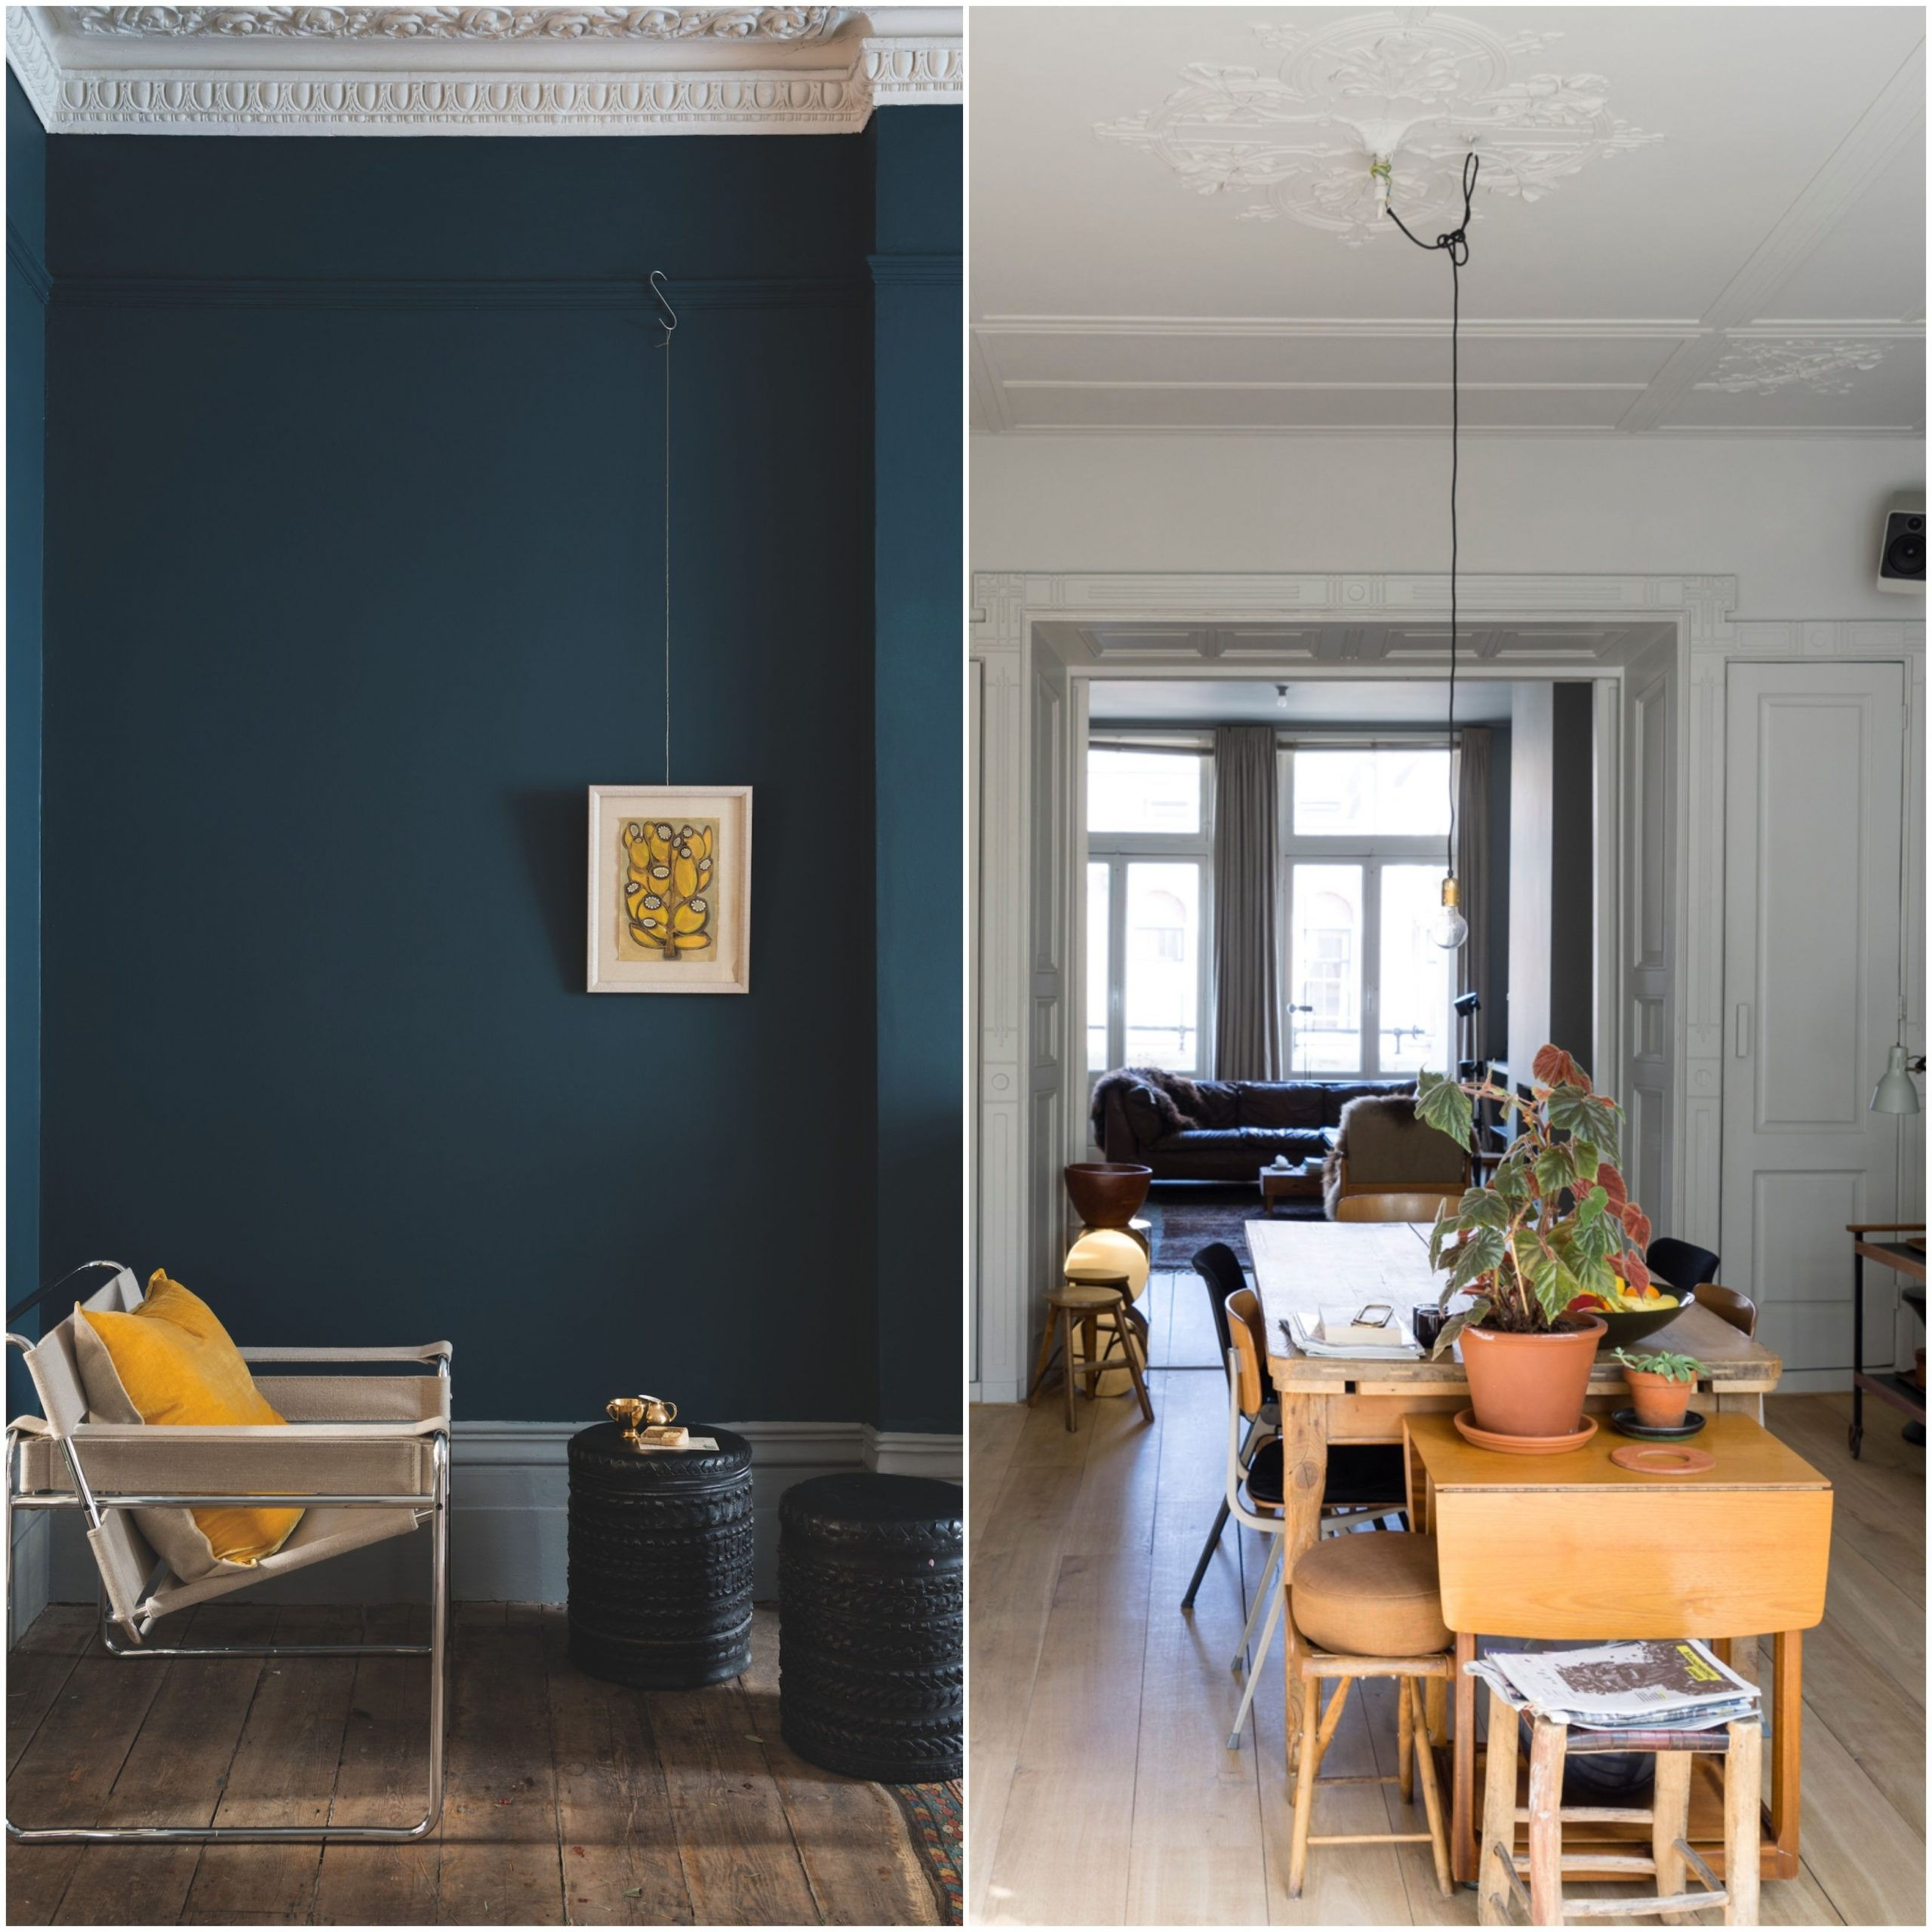 How To Decorate With Farrow And Ball Ammonite & Hague Blue Light Blue Farrow And Ball Living Room